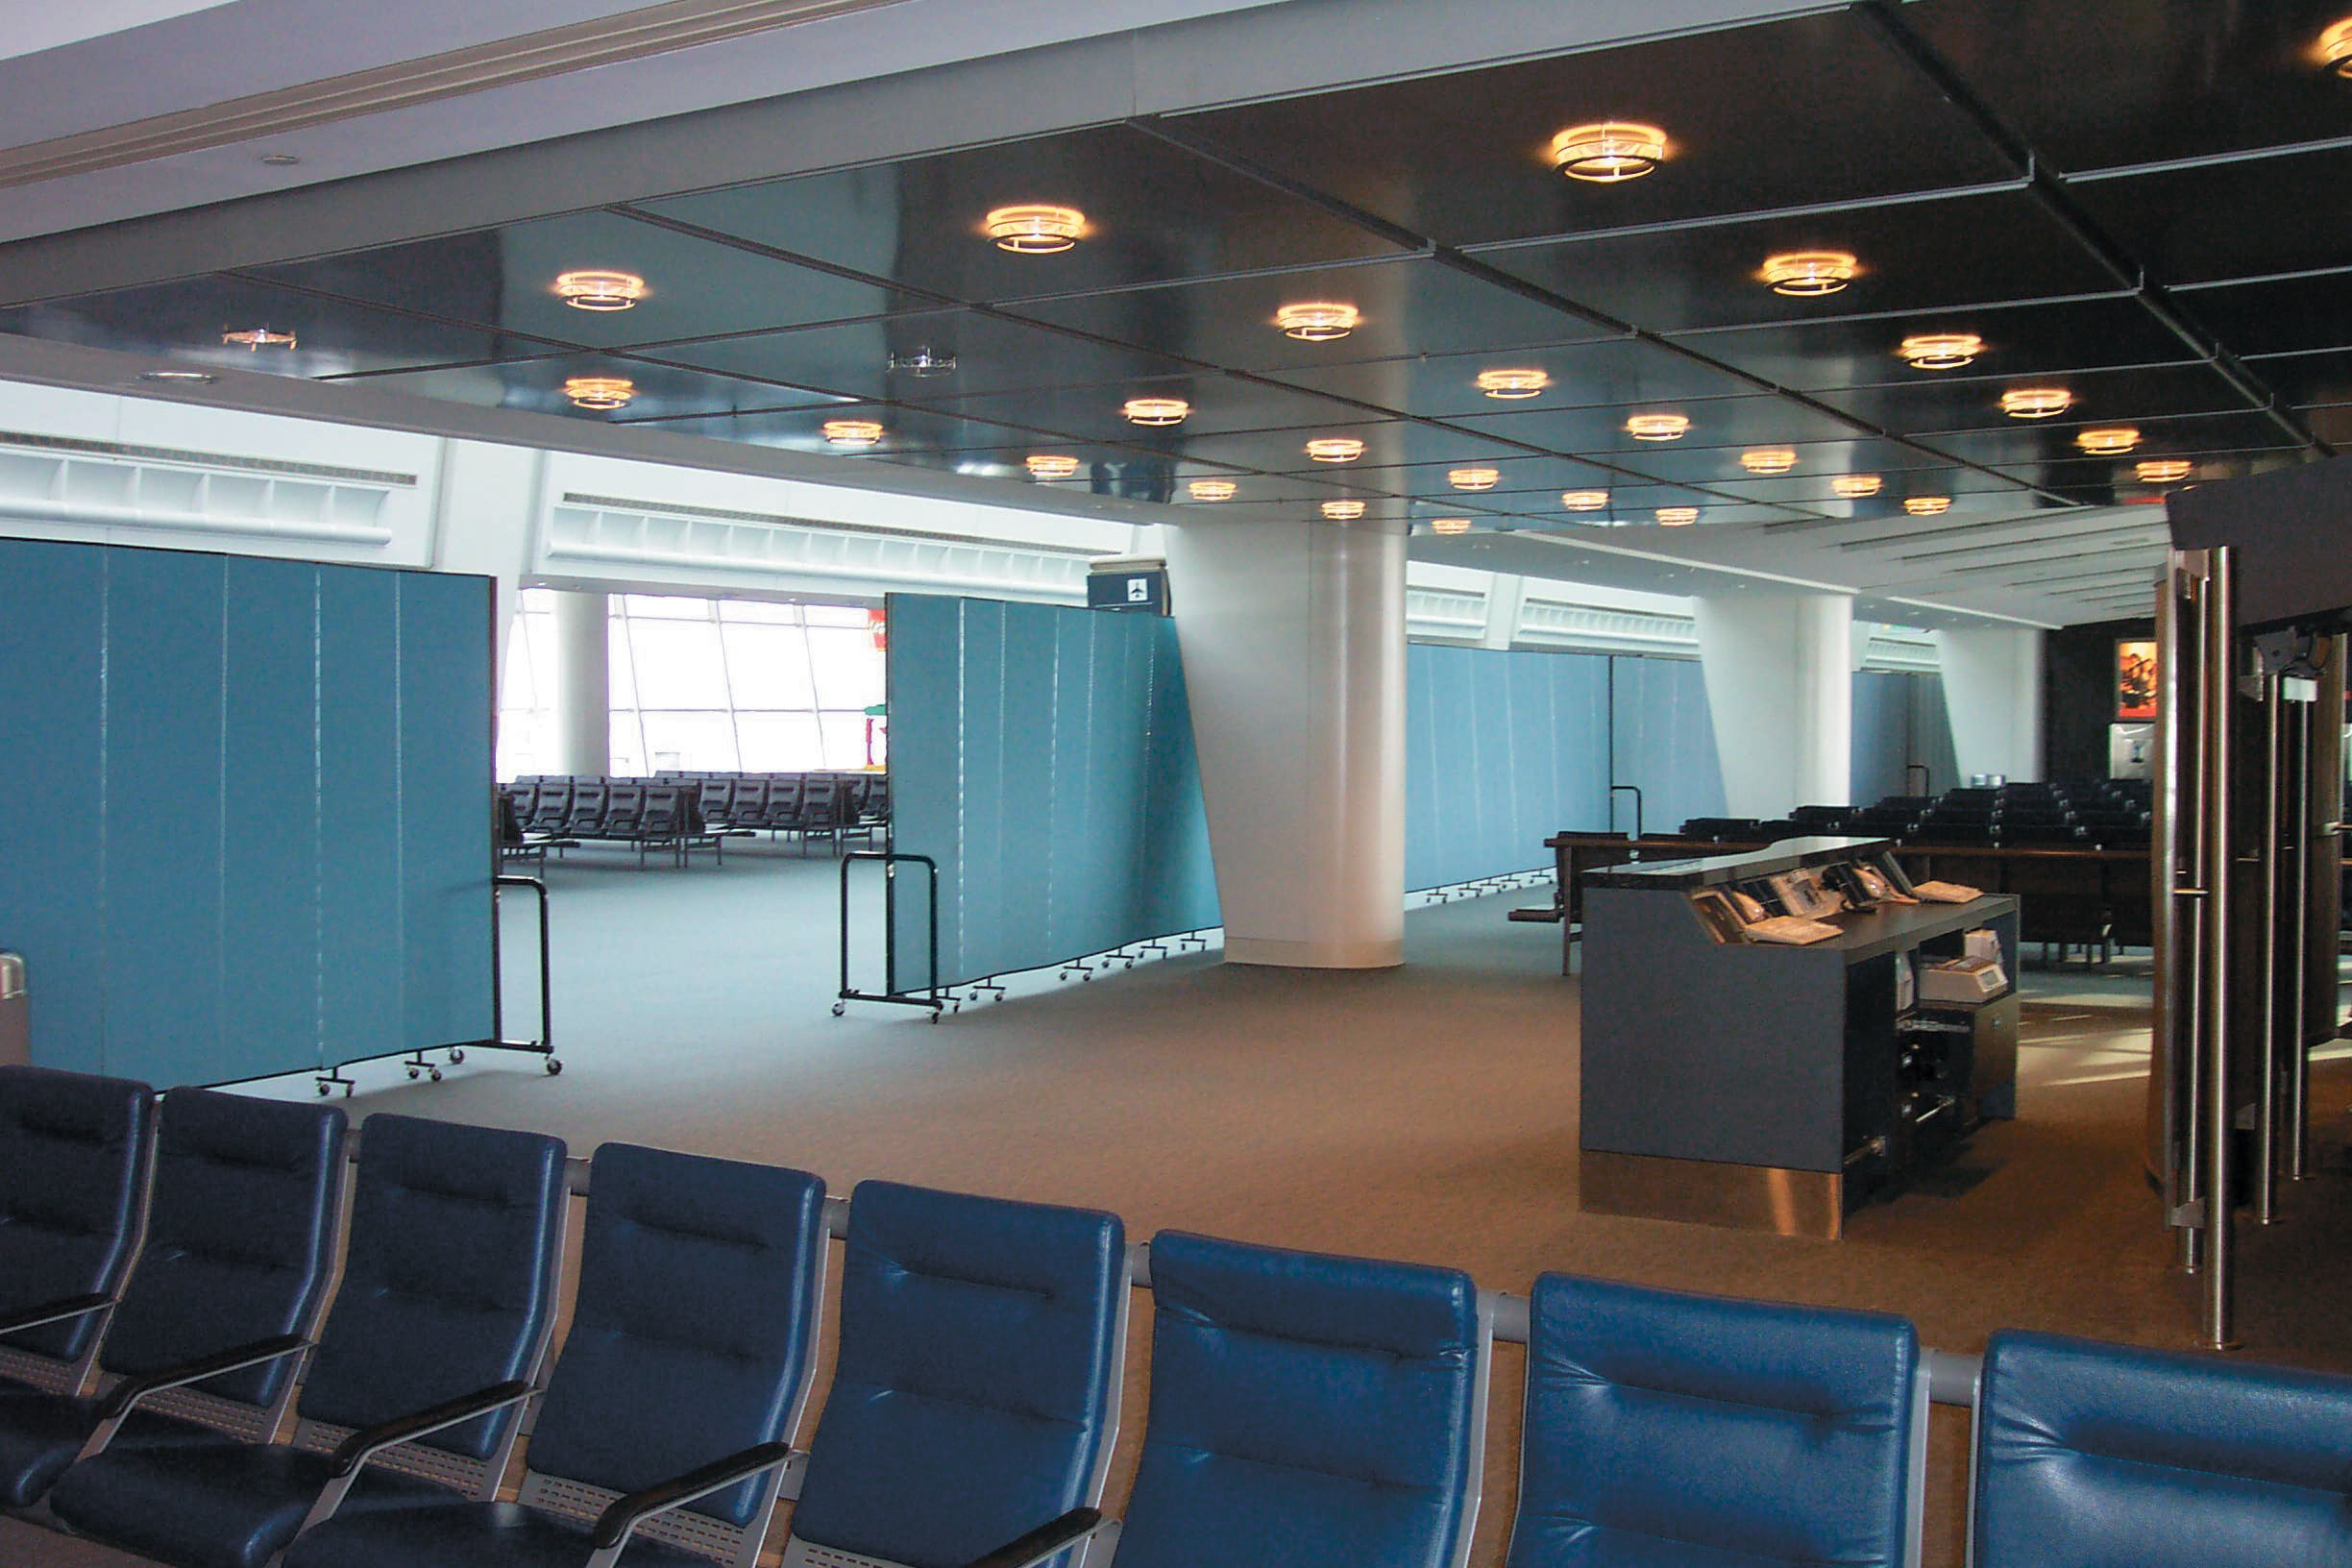 A continuous wall of Screenflex Room Dividers separates a vacant airport terminal from a walkway.